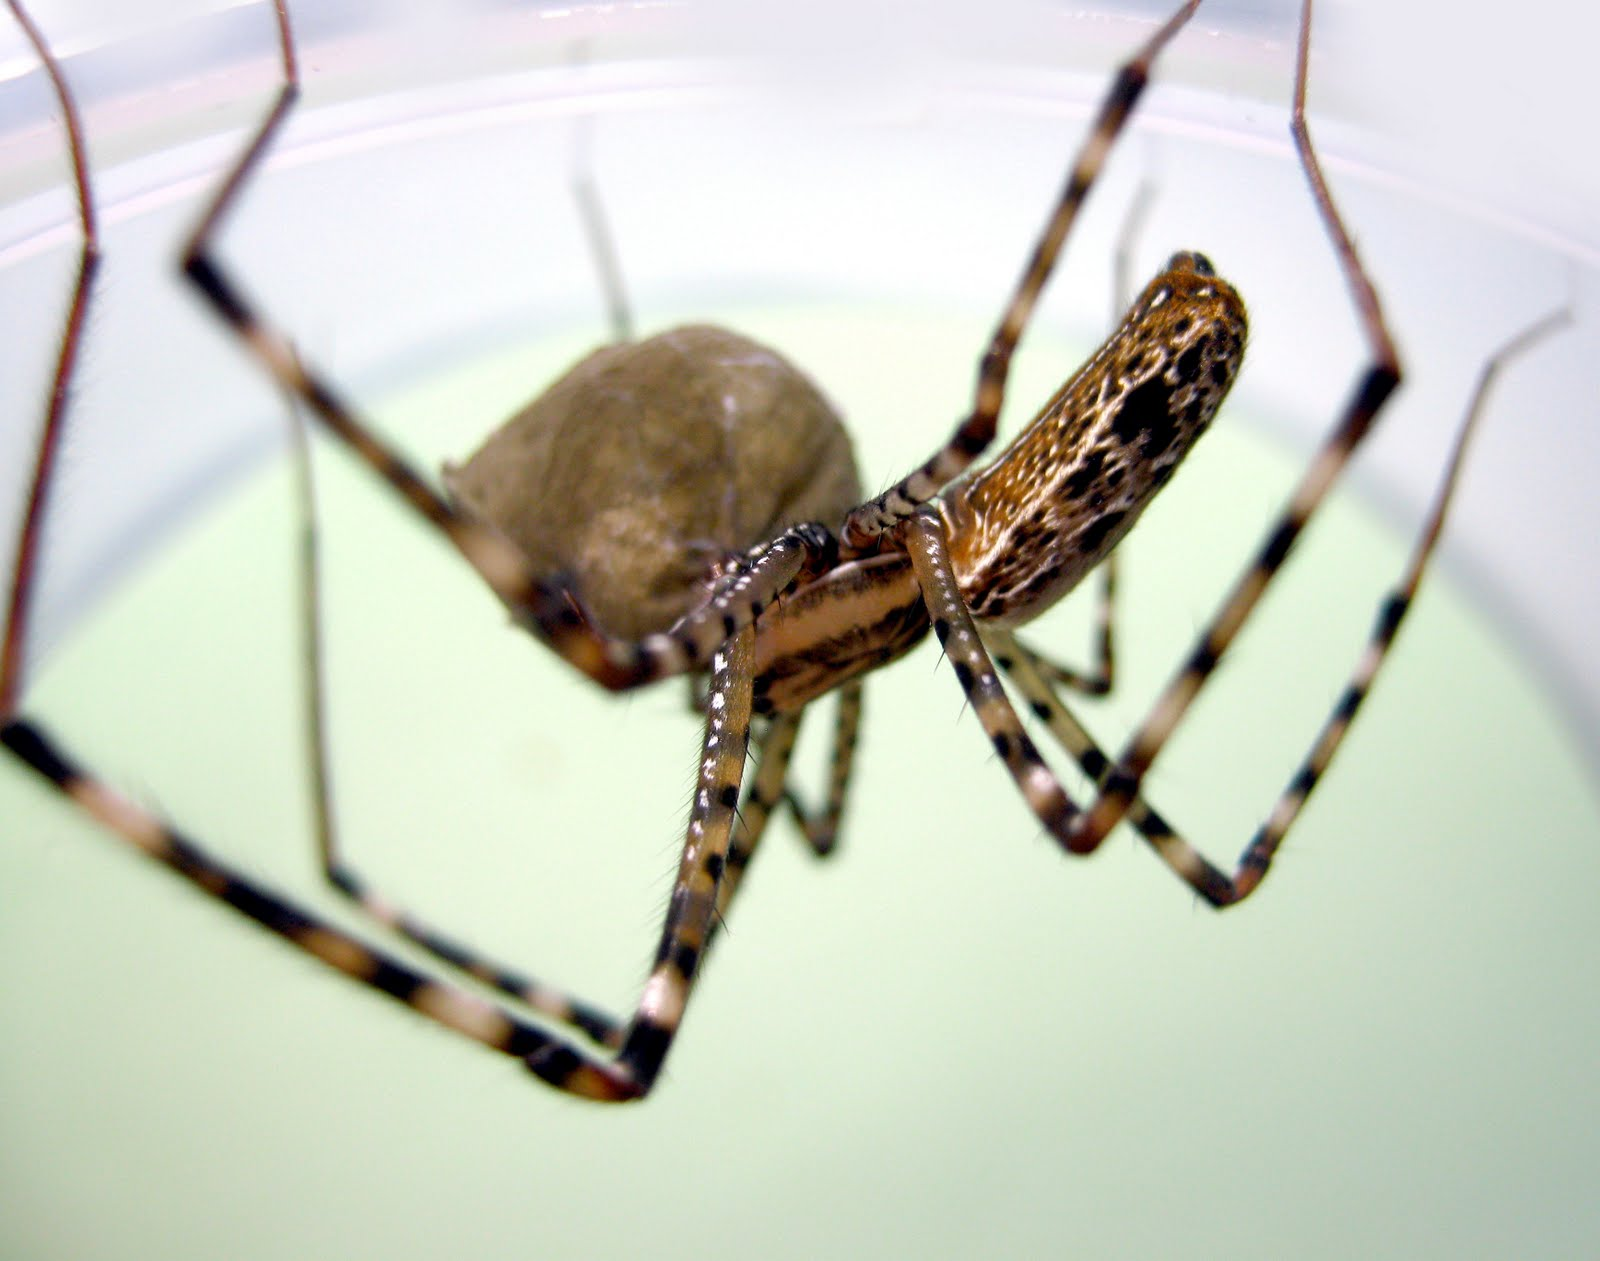 Tooth cave spider pictures Awesome Pictures - Infographics - Free Wallpapers